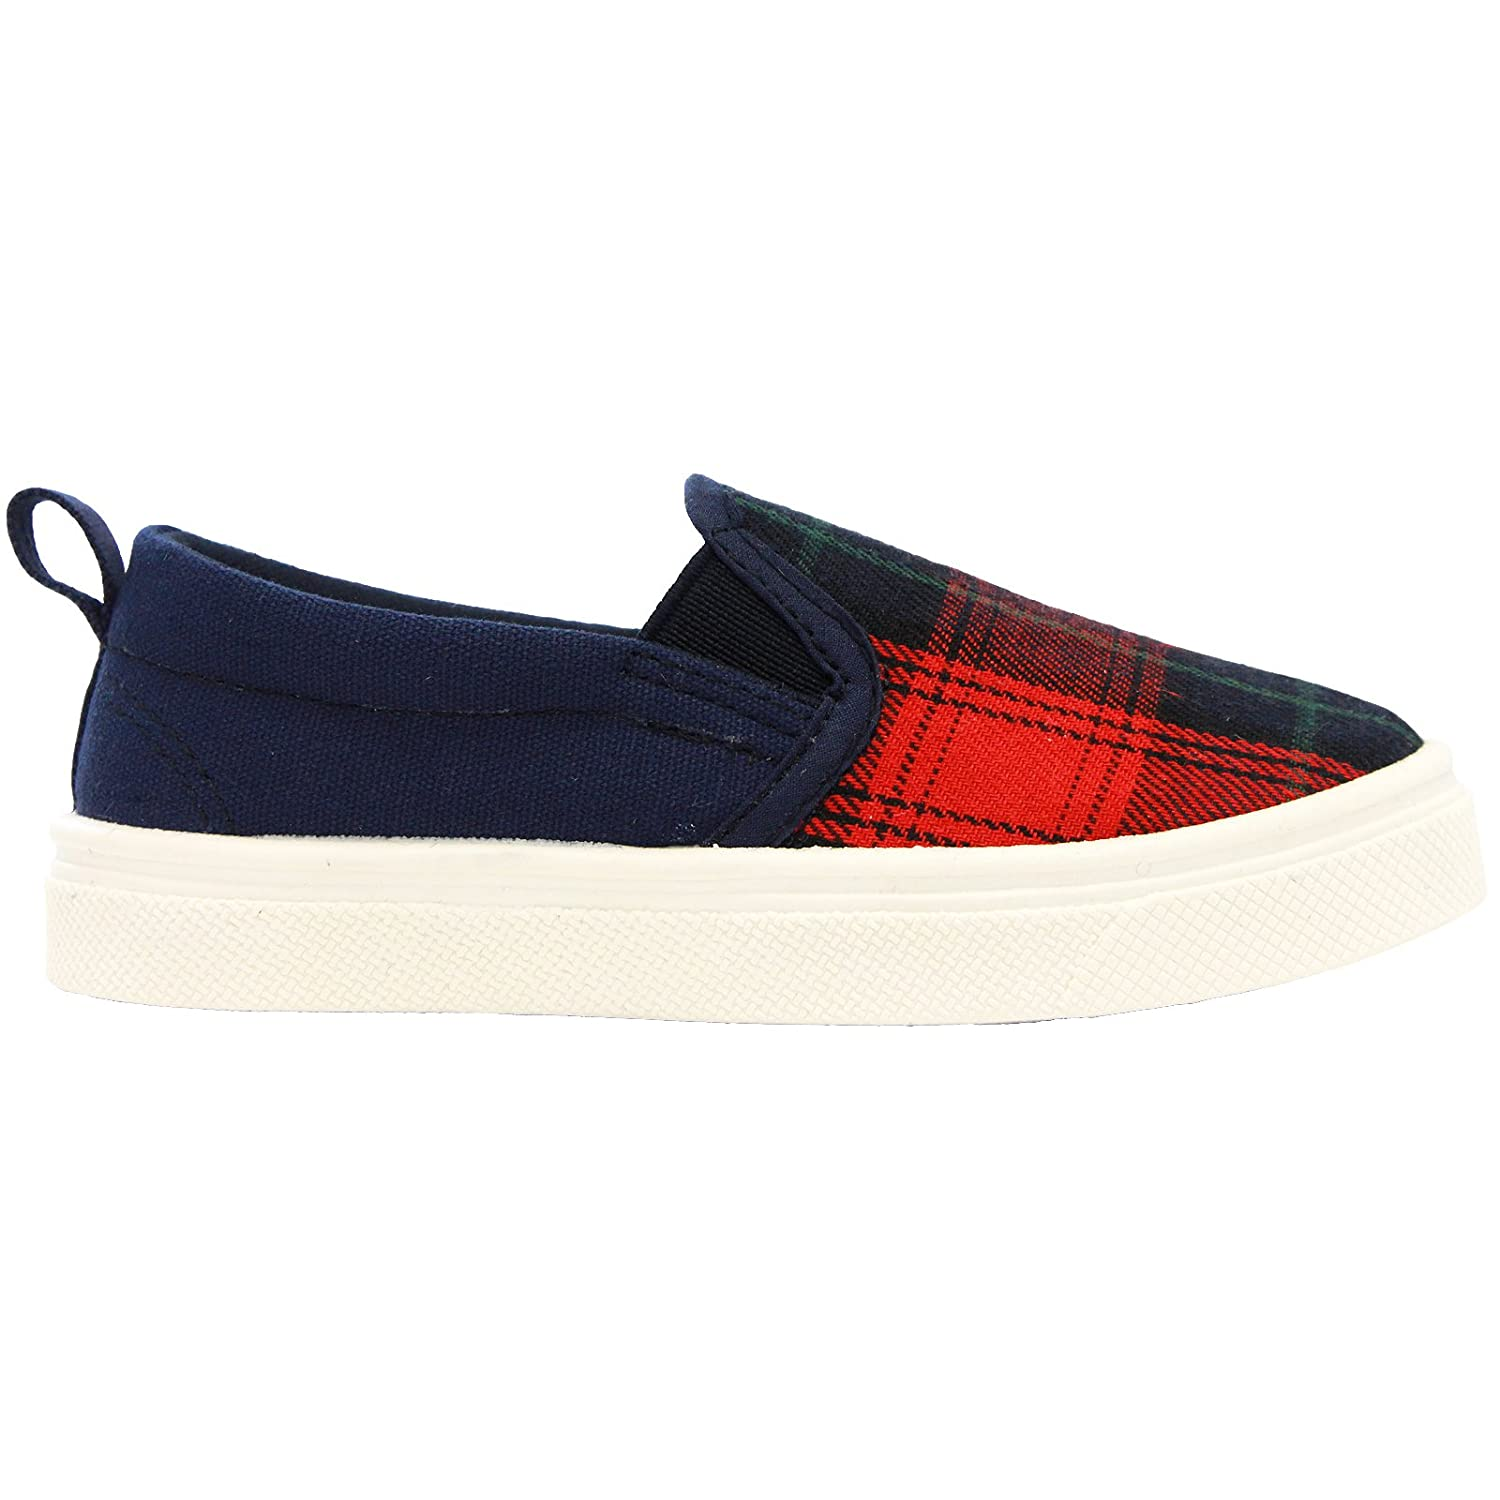 Oomphies Rascal Boys Slip-On Sneaker (Little Kid & Big Kid)